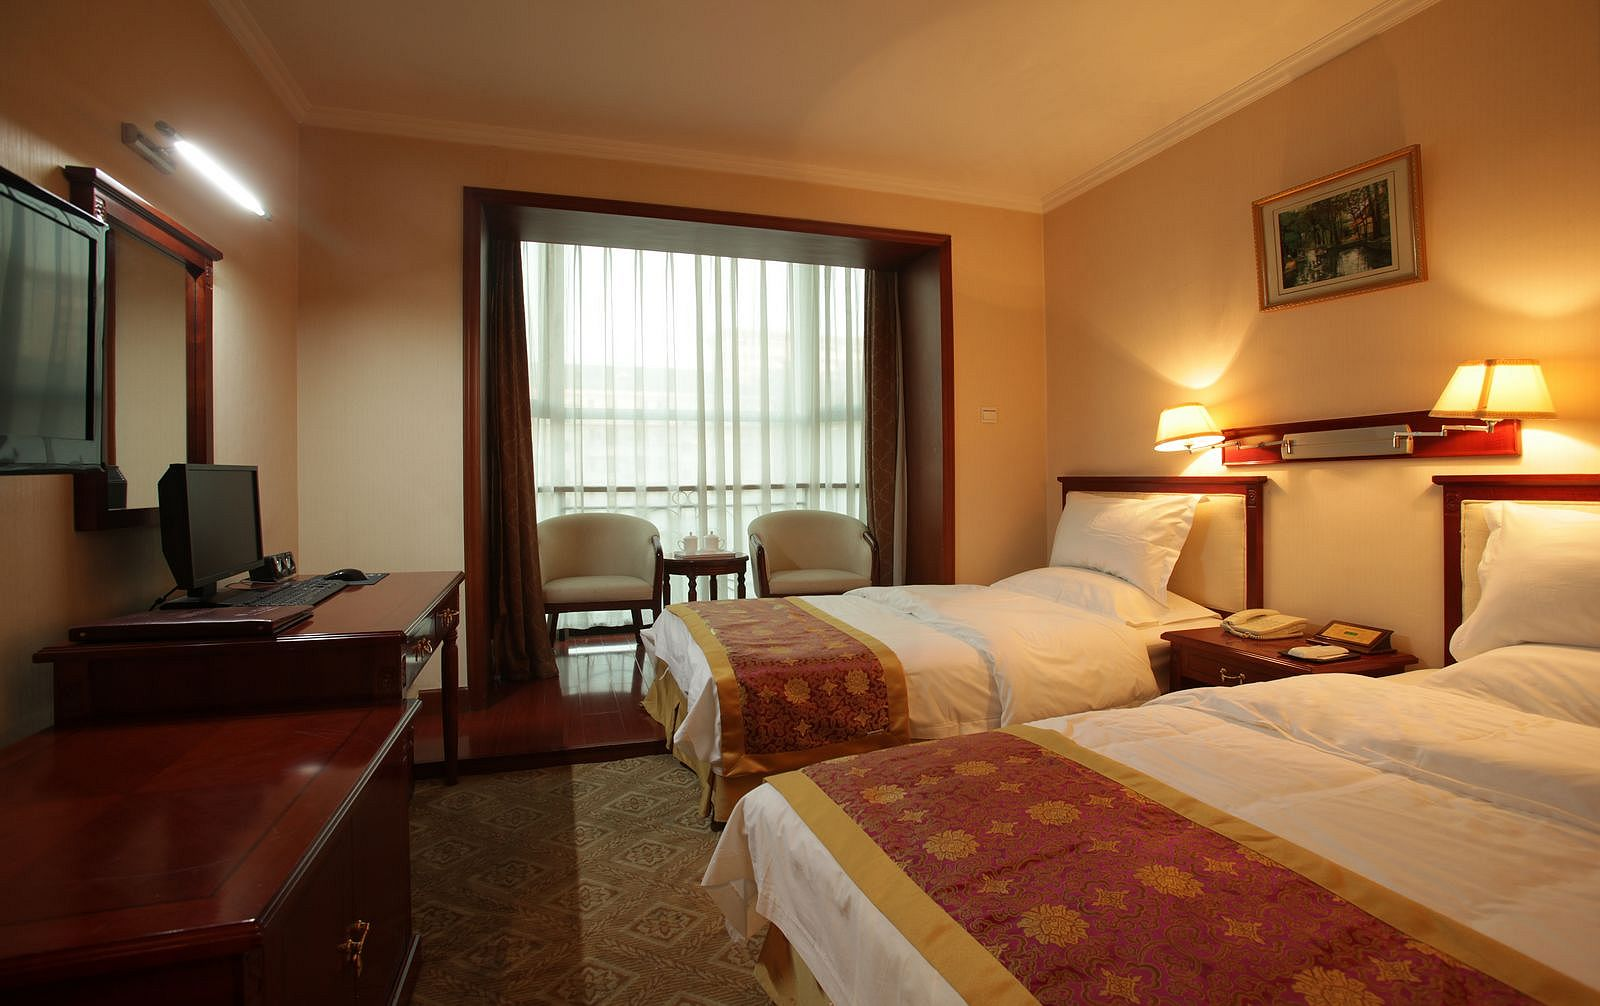 http://www.4fang.cc/pictures/TrustSoft/Hotel/201442816161846.jpg